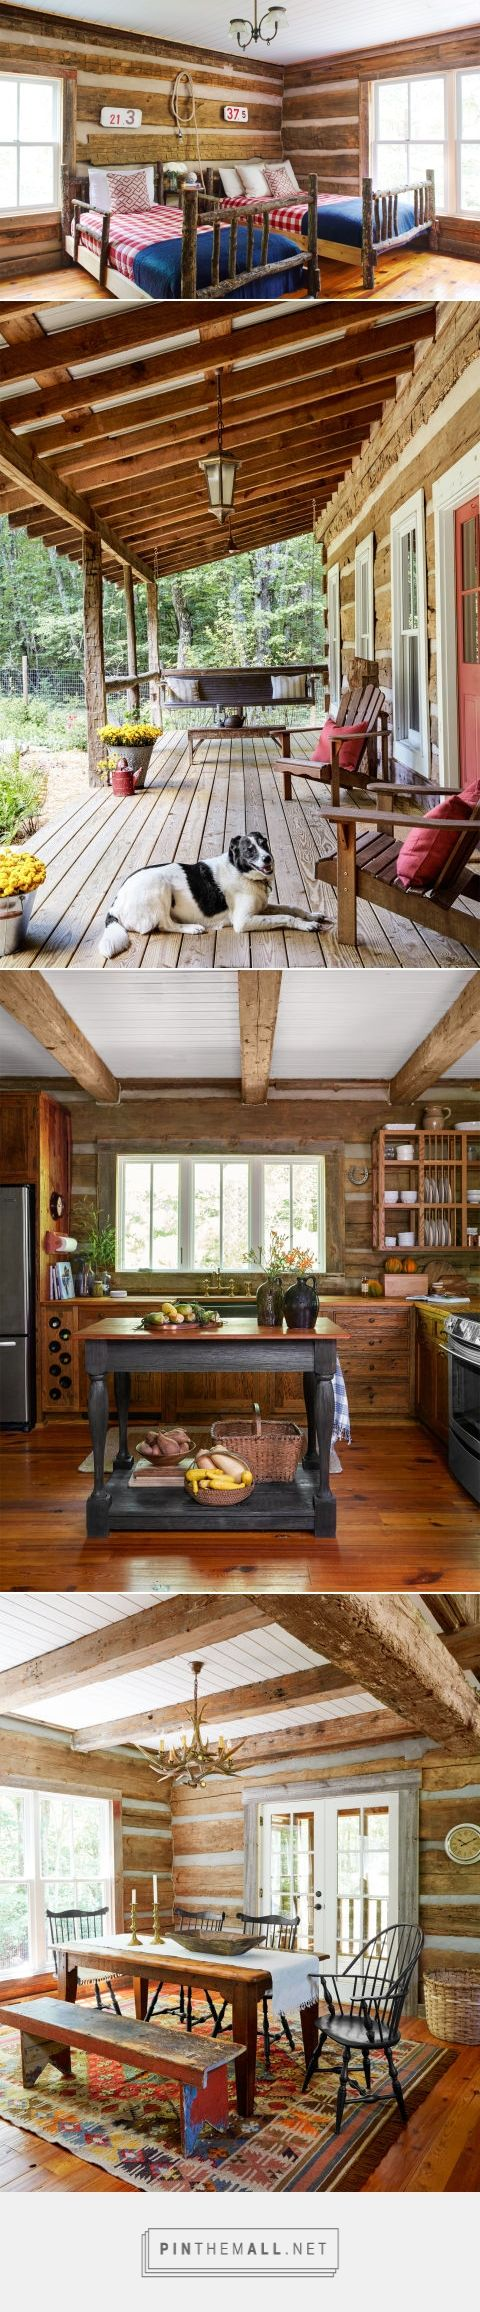 25 best ideas about Cabin interiors on Pinterest